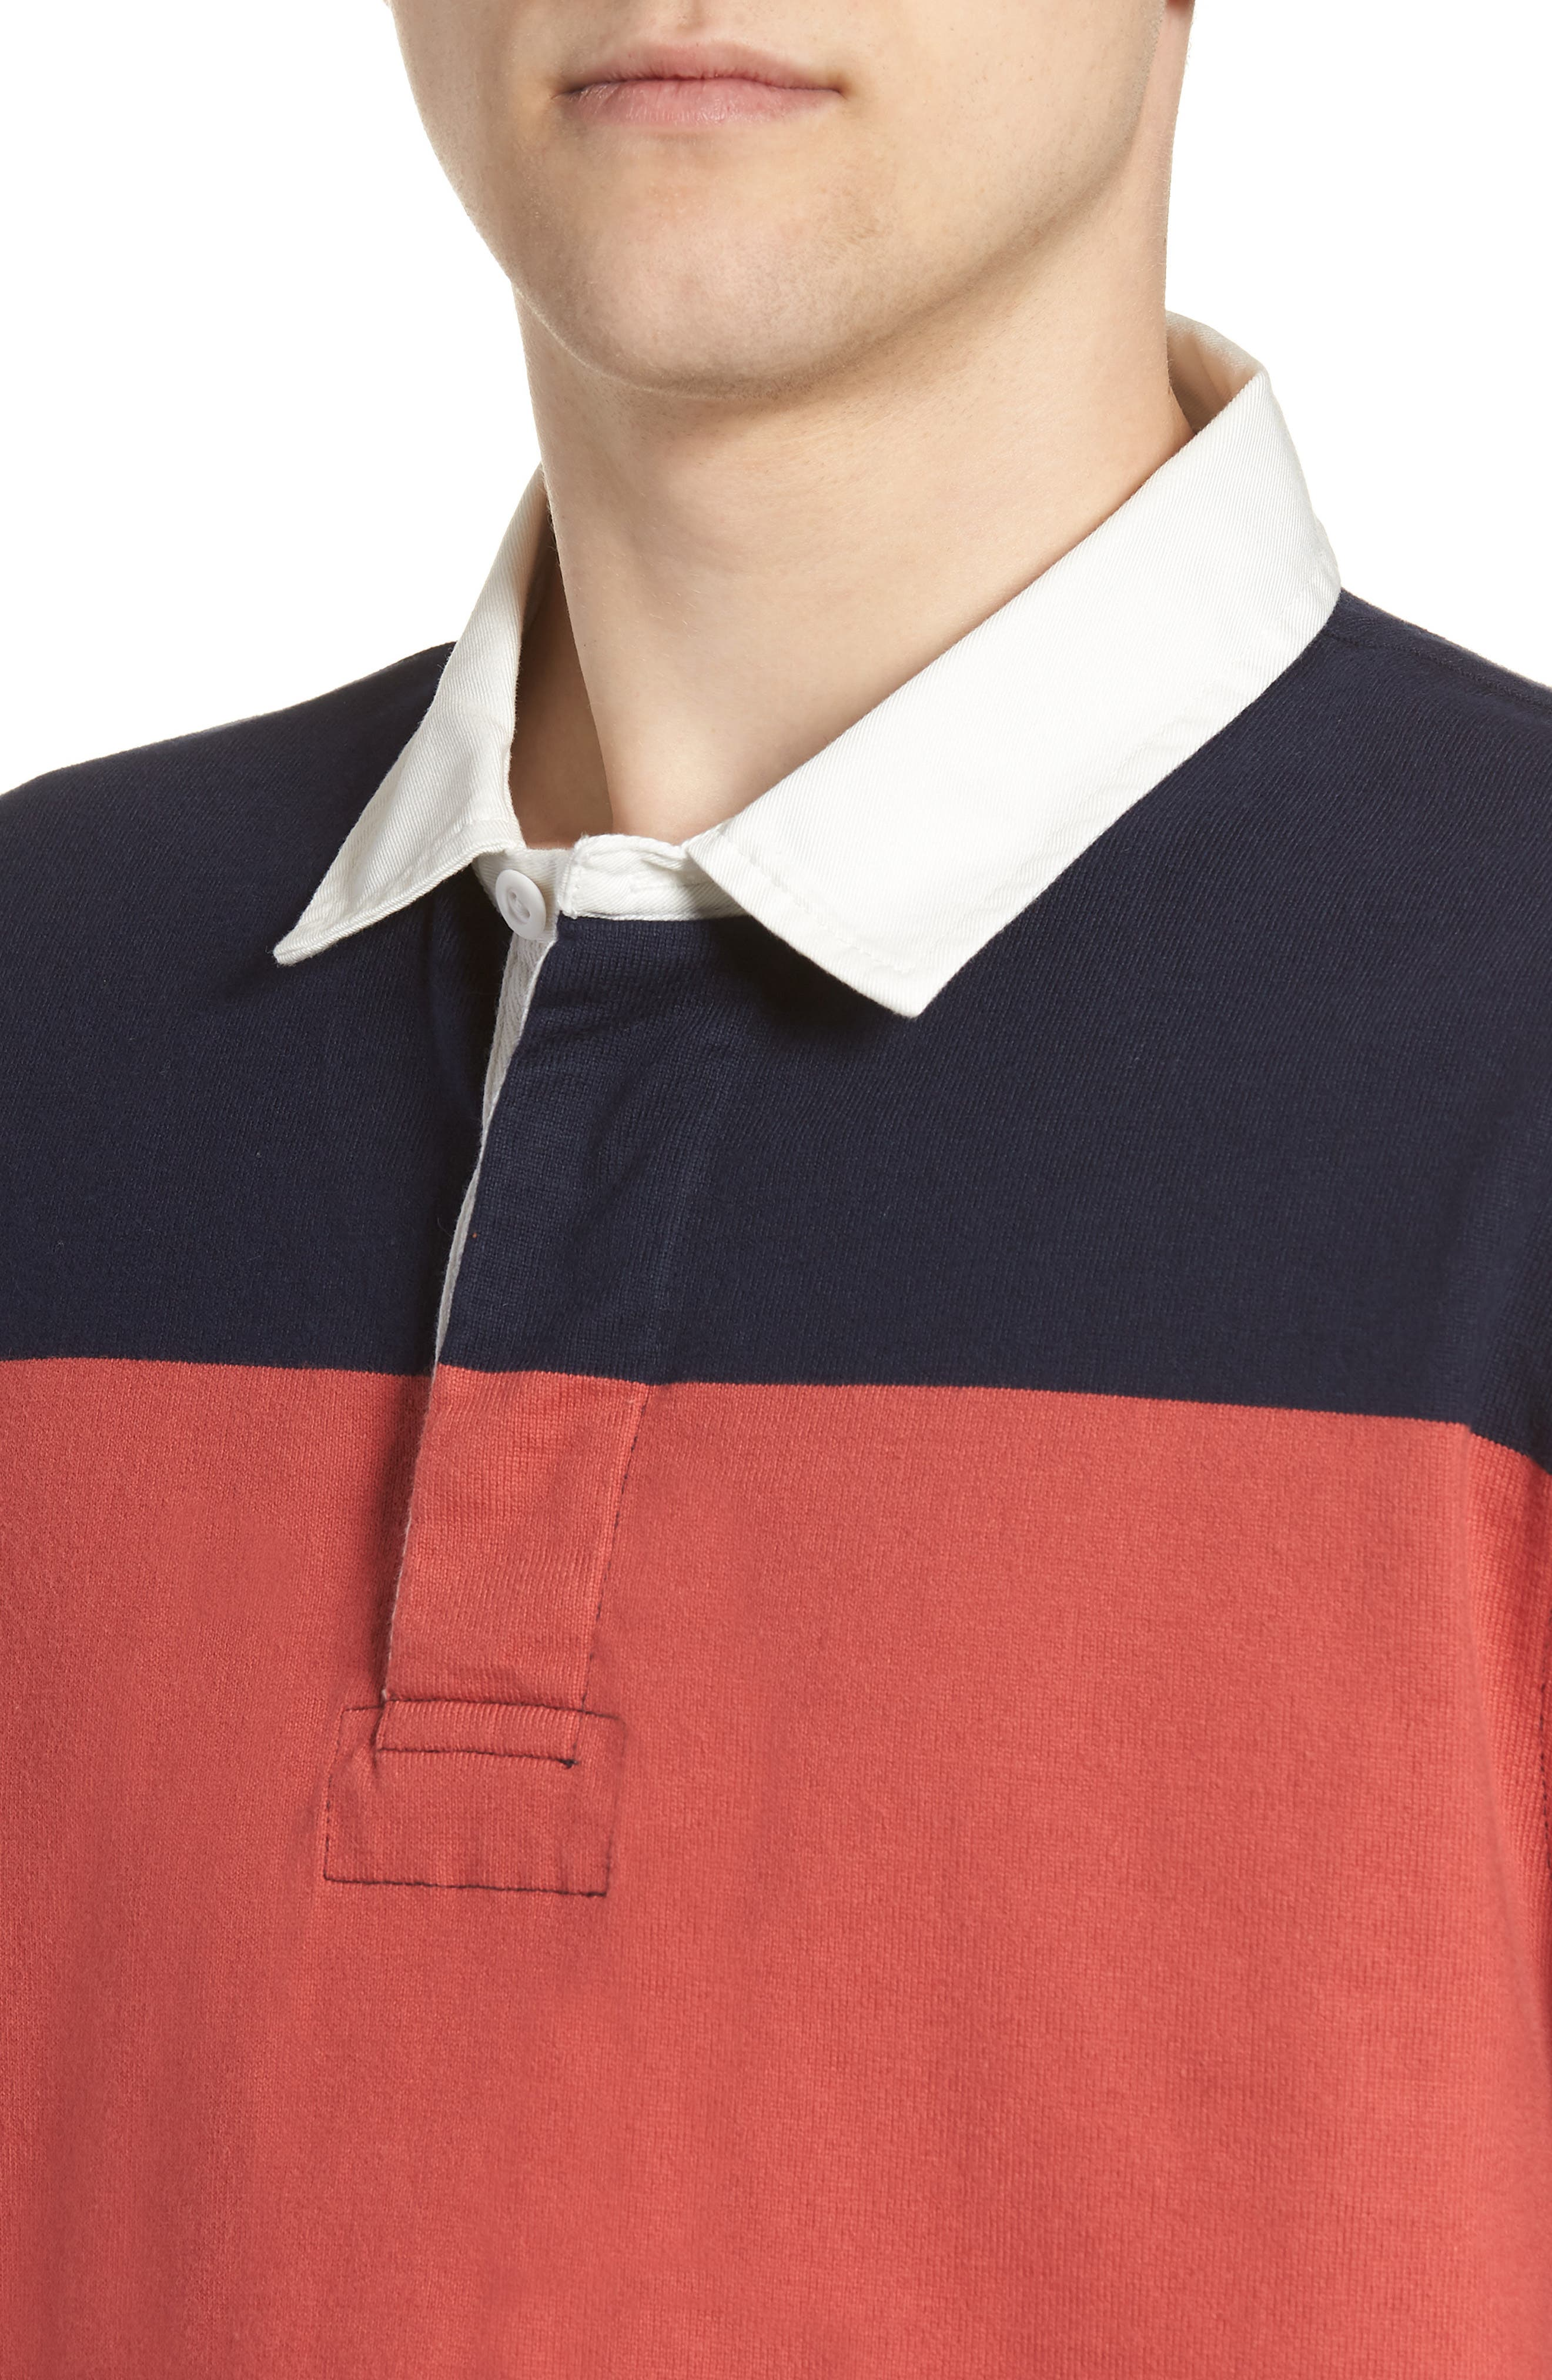 1984 Stripe Rugby Shirt,                             Alternate thumbnail 4, color,                             600